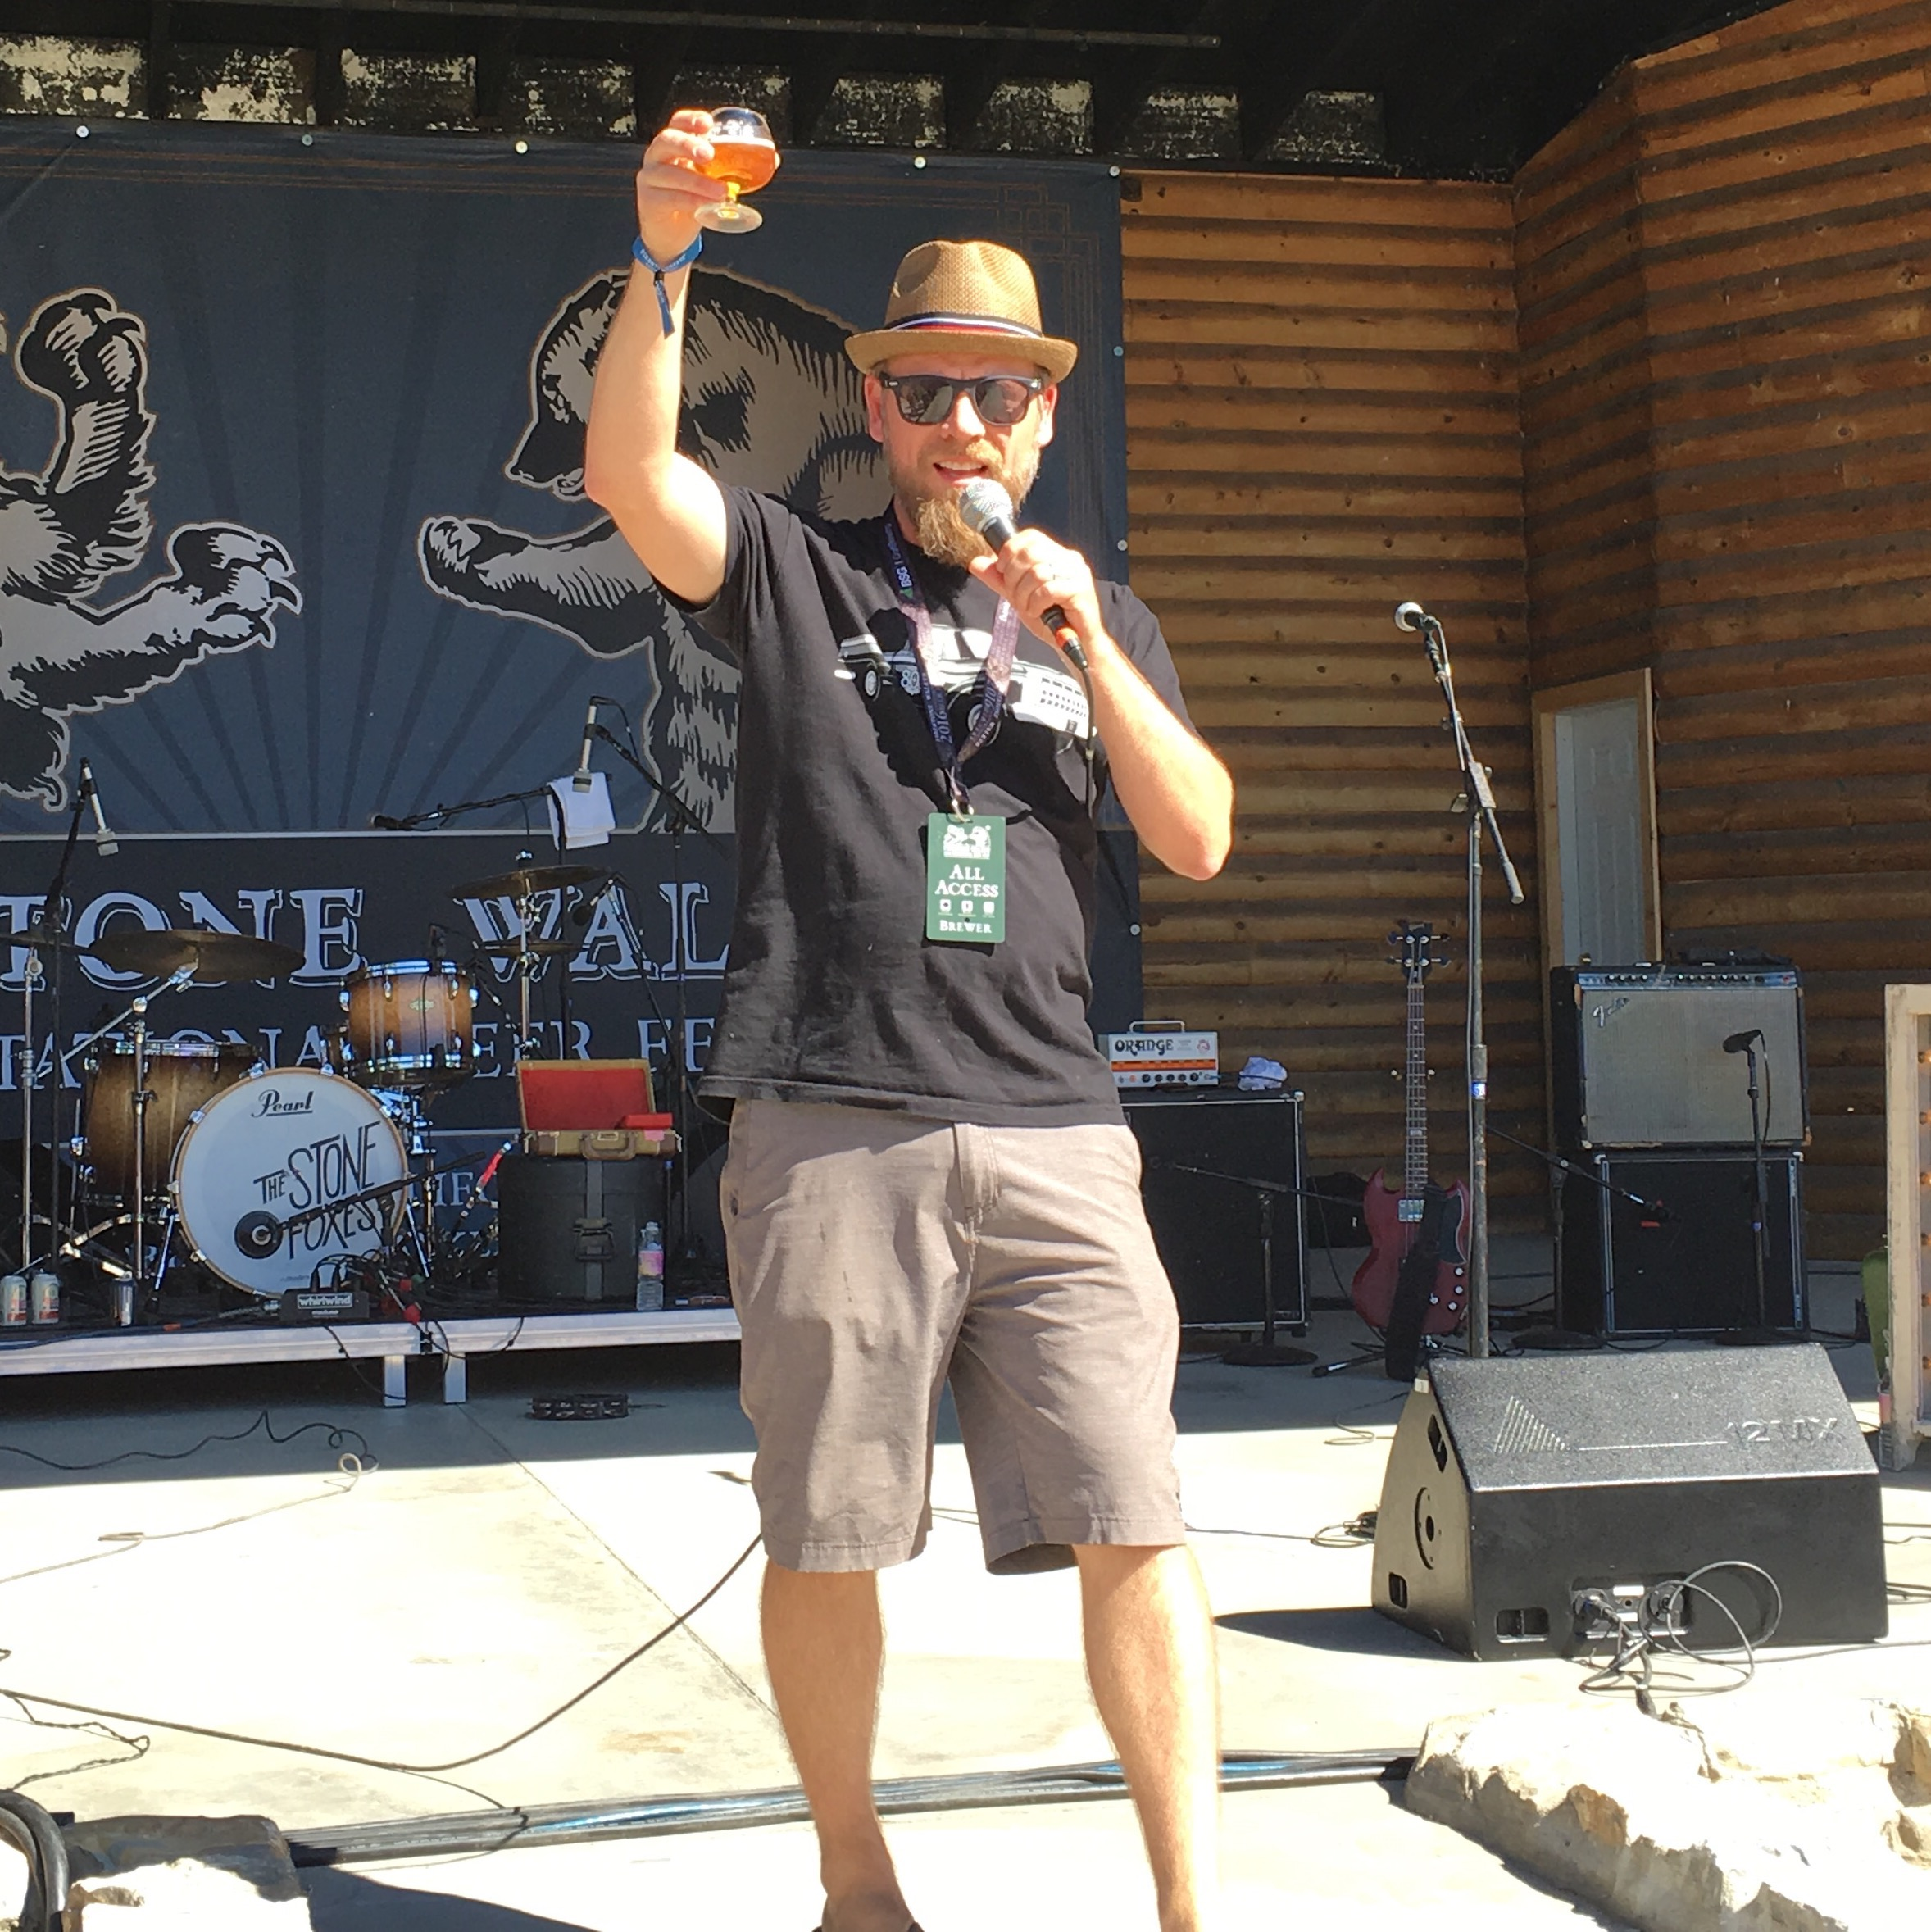 Firestone Walker Brewmaster Matt Brynildson giving thanks to the crowd during the 2016 Firestone Walker Invitational Beer Fest.